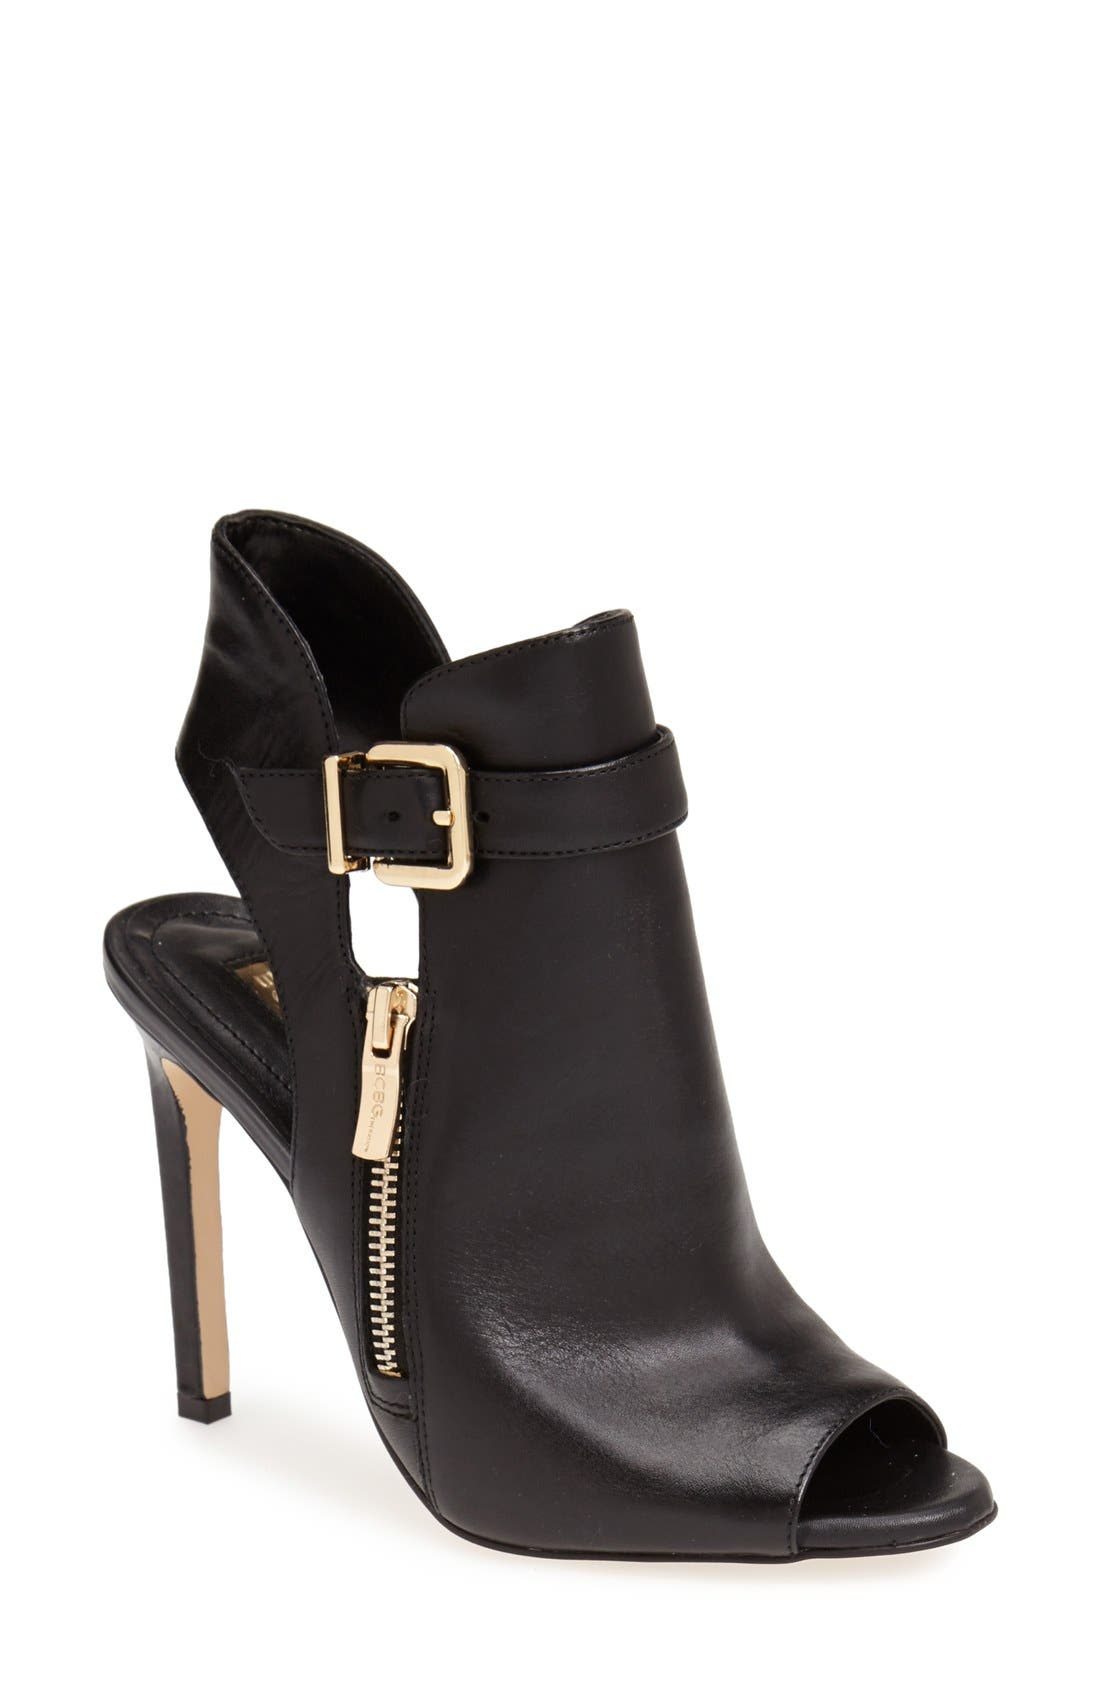 Main Image - BCBGeneration 'Chandler' Peep Toe Leather Bootie (Women)